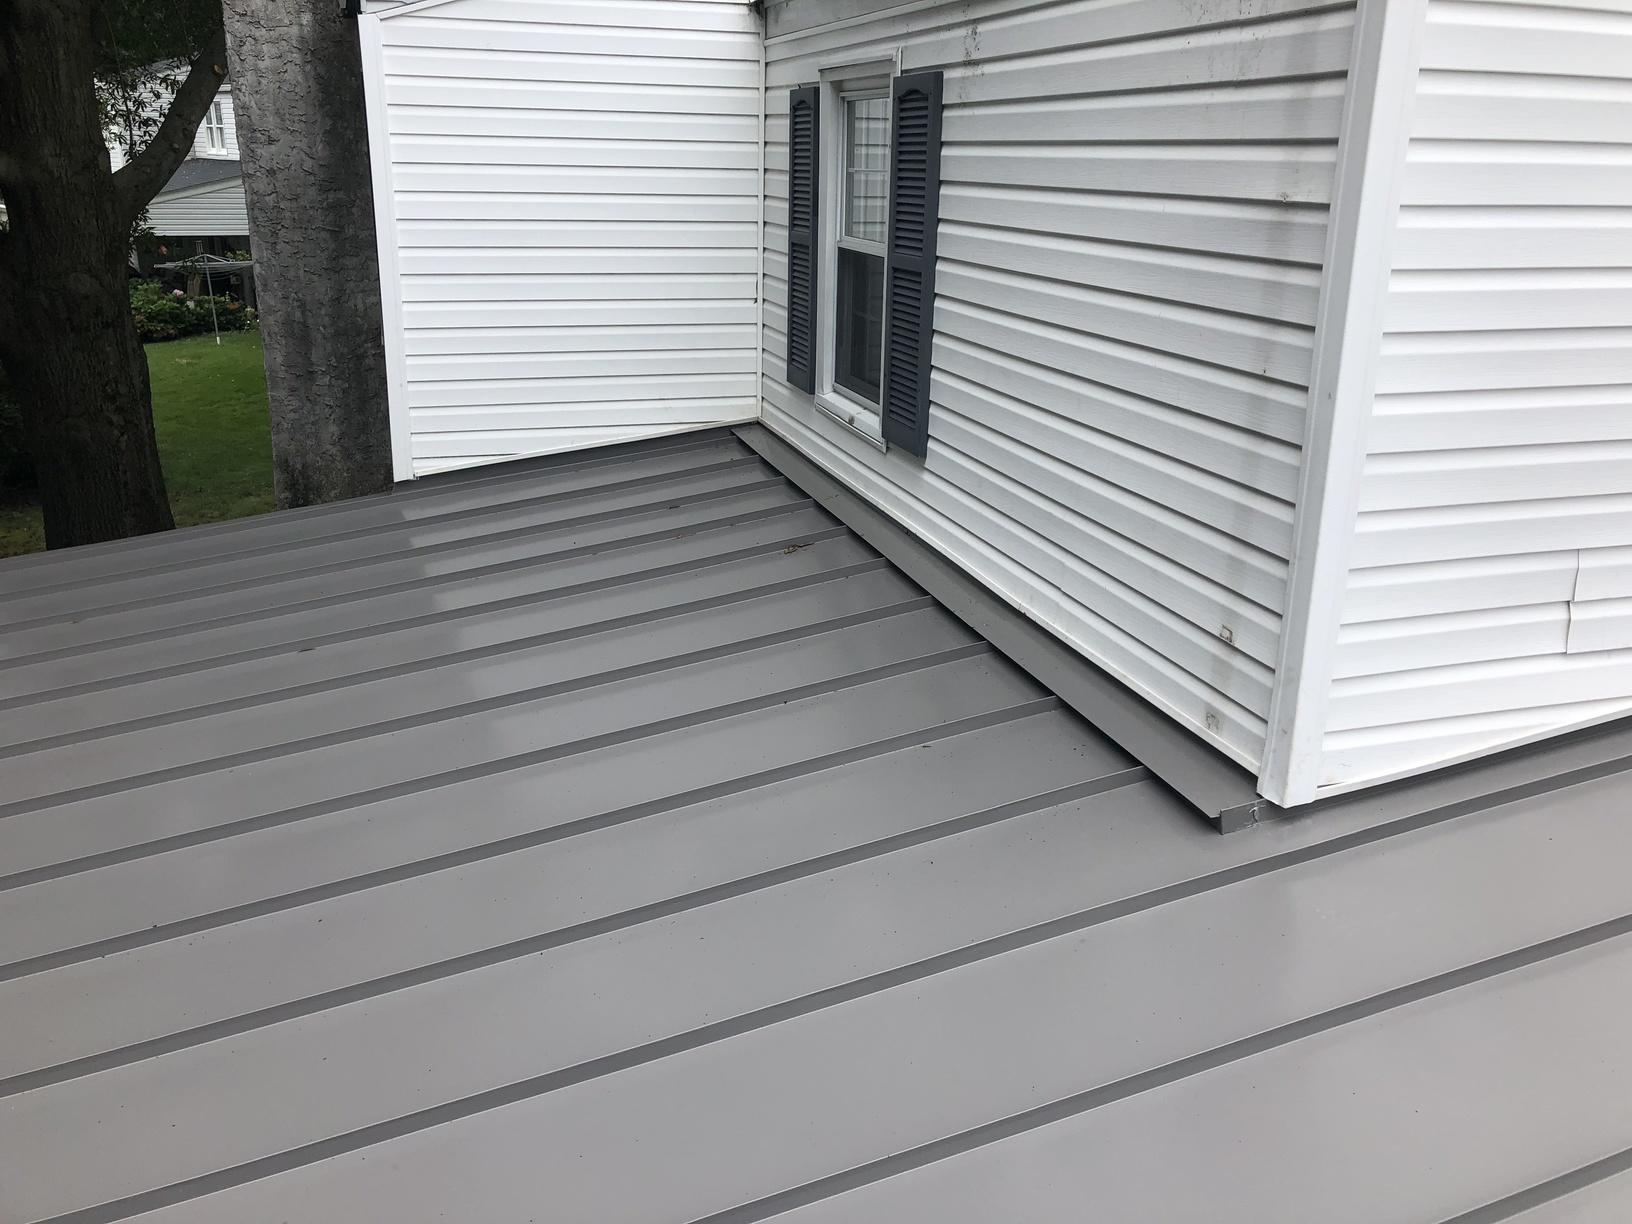 Owens Corning Shingles And Standing Seam Metal Roof